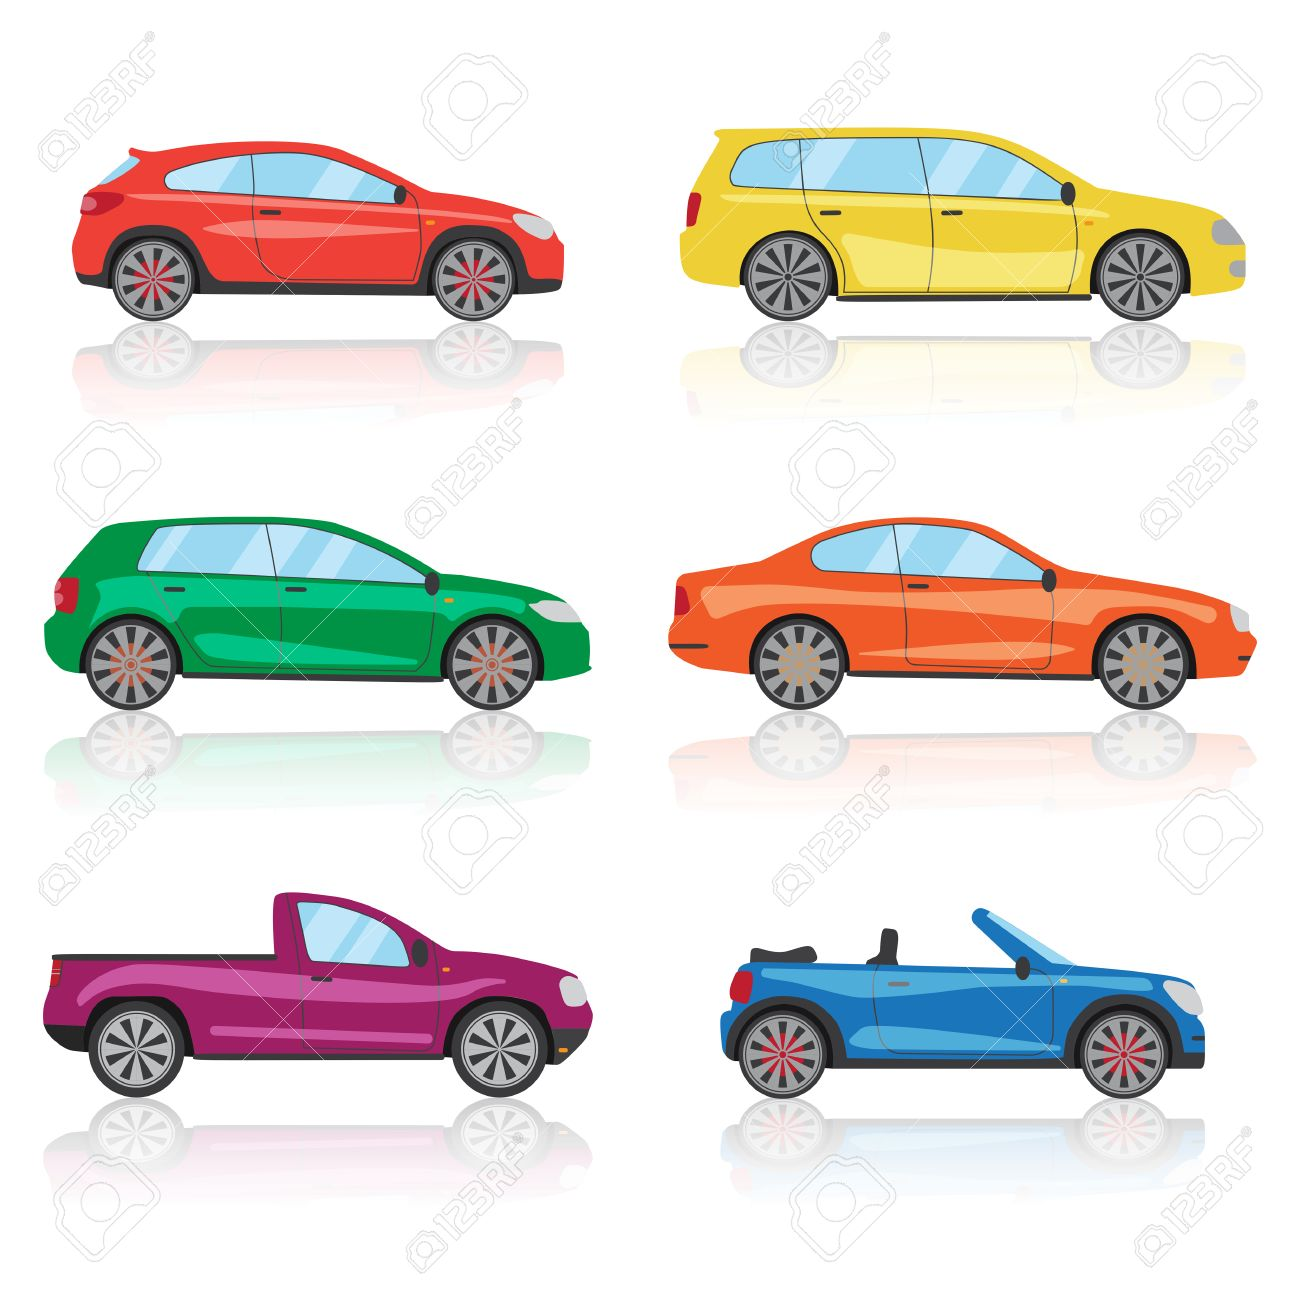 Cars icons set. 6 different colorful 3d sports car icon. Car vector EPS10 - 58300248